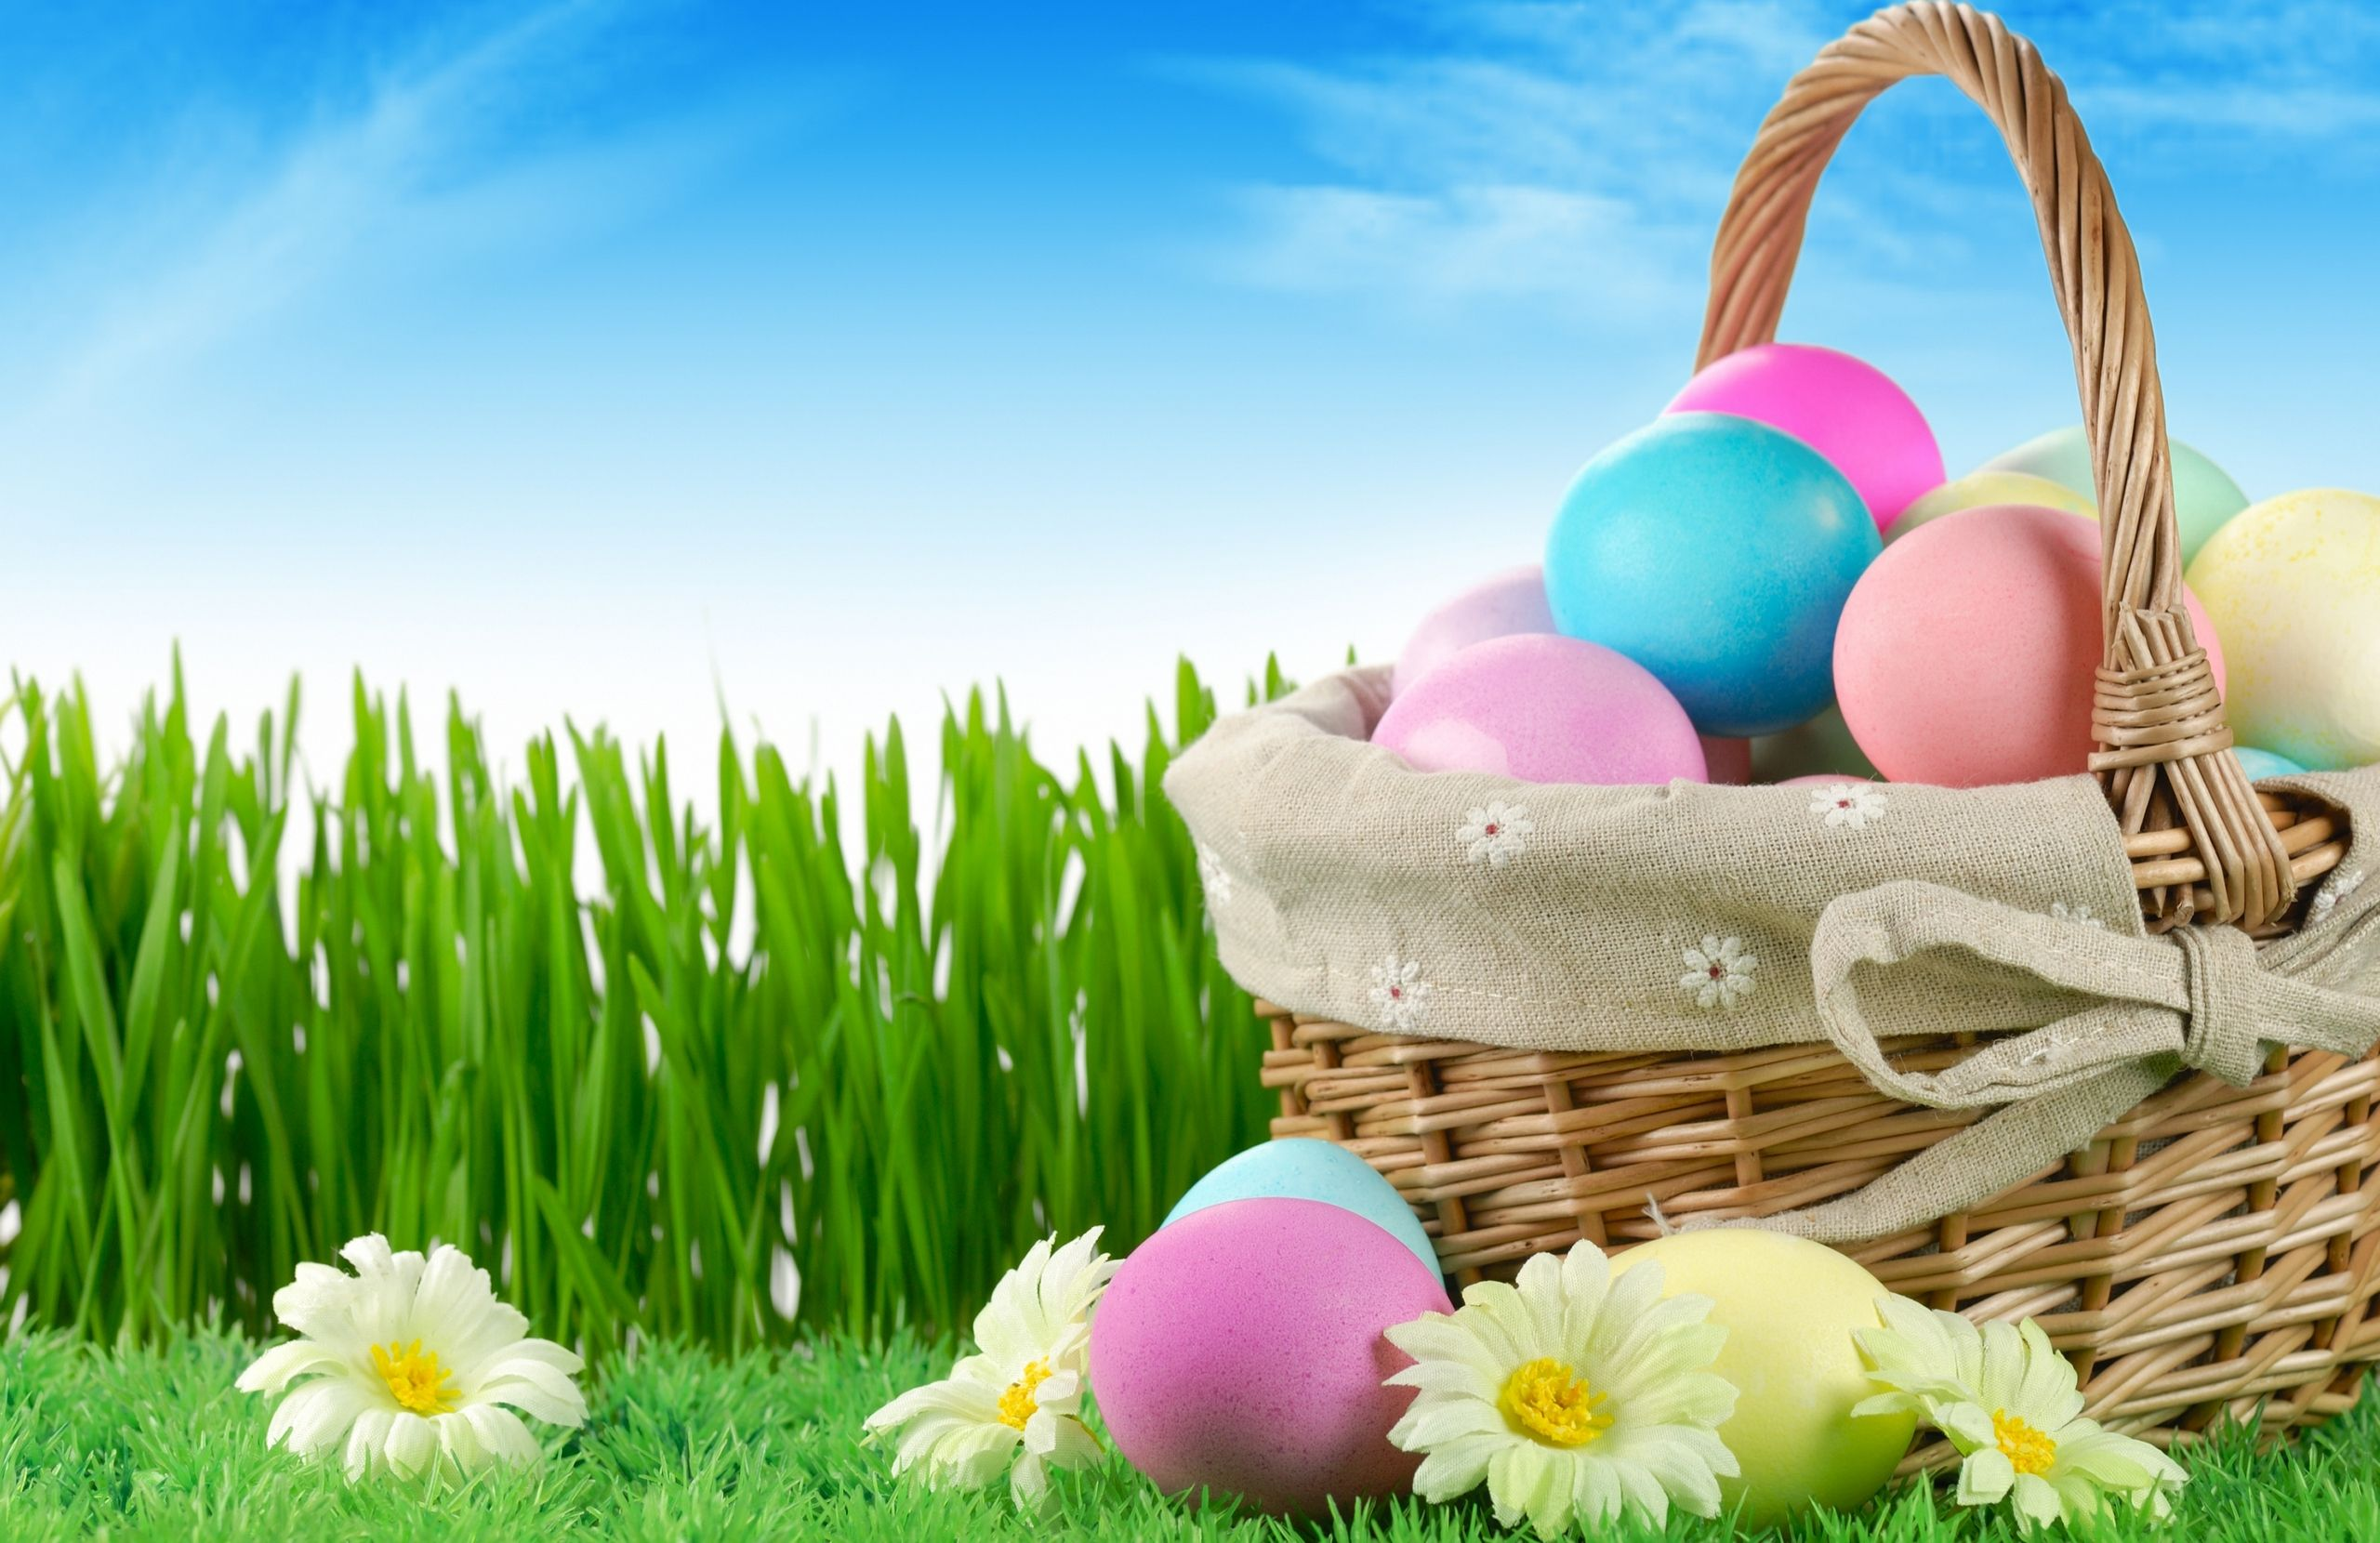 happyeaster90115.jpg (2560×1660) Hapy Day Pinterest